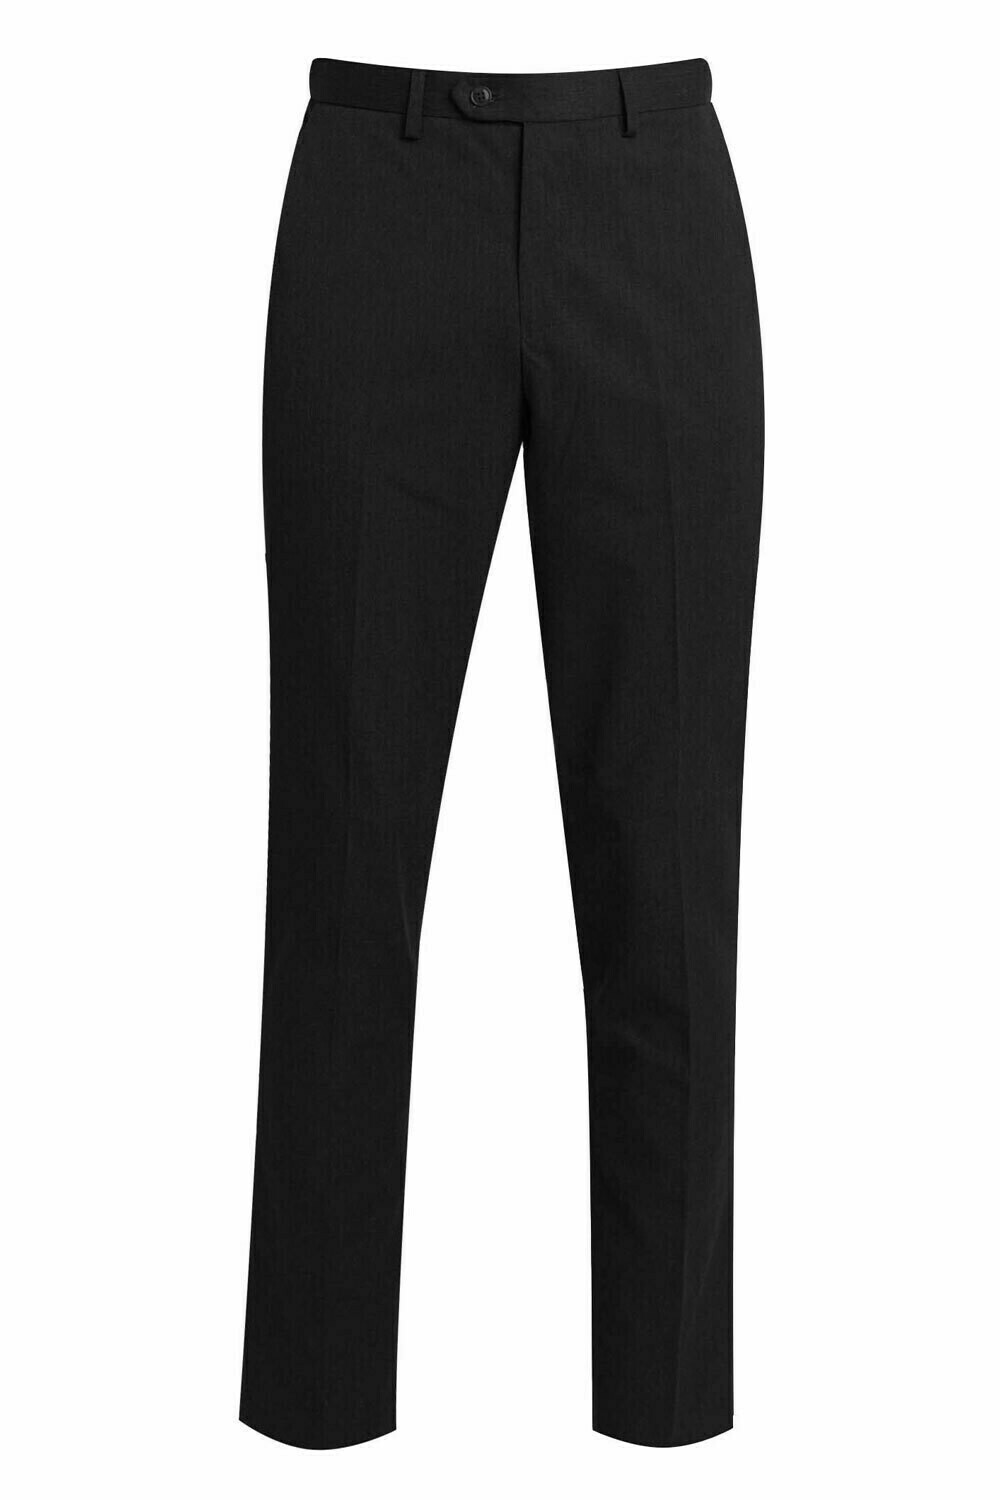 Senior School ULTRA Slim Fit Boys Trouser (Super Skinny)